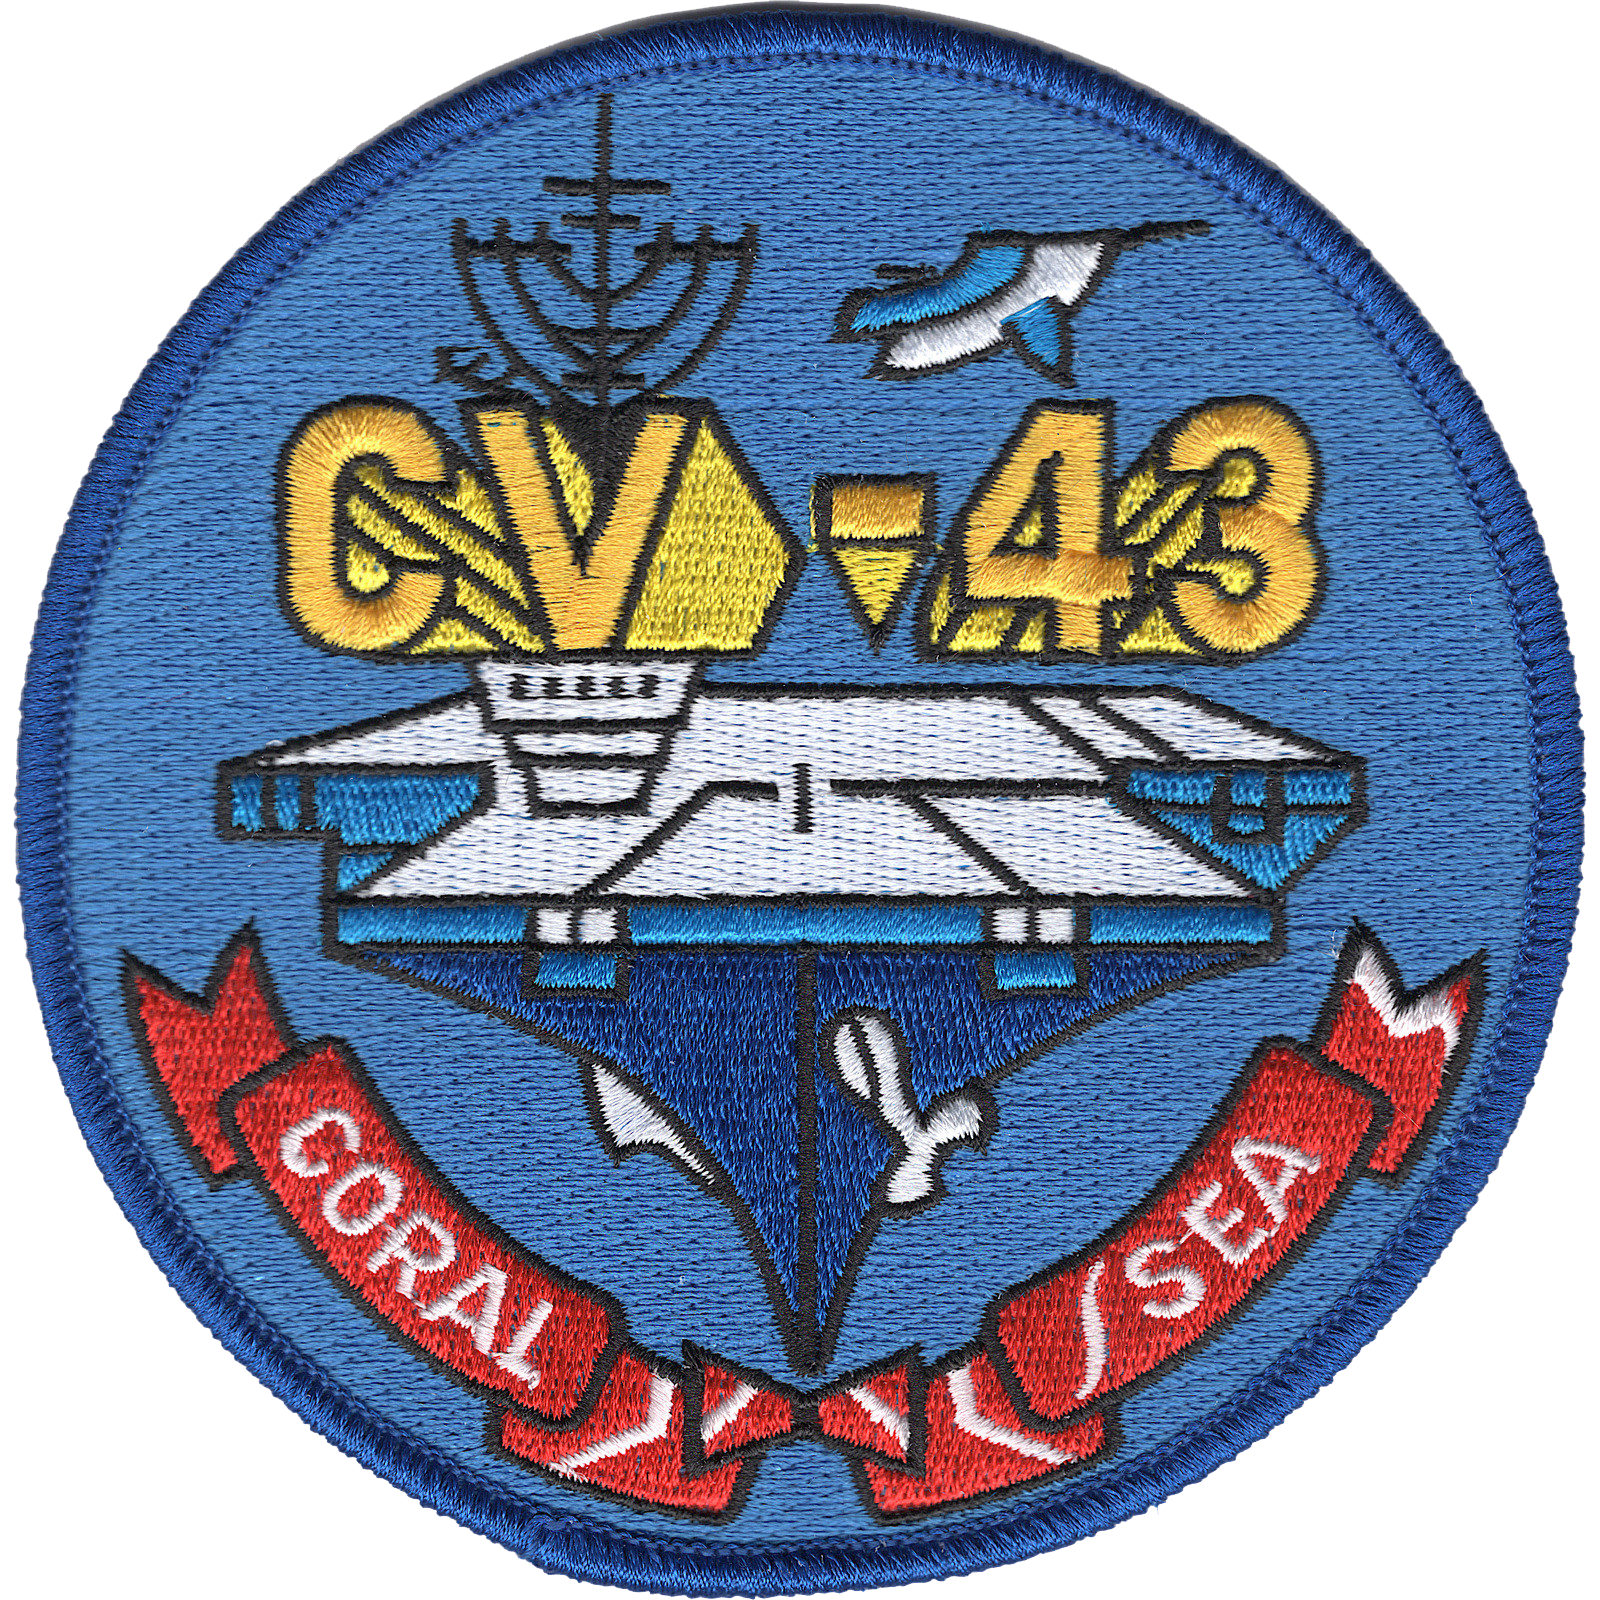 USS Coral Sea (CV-43)